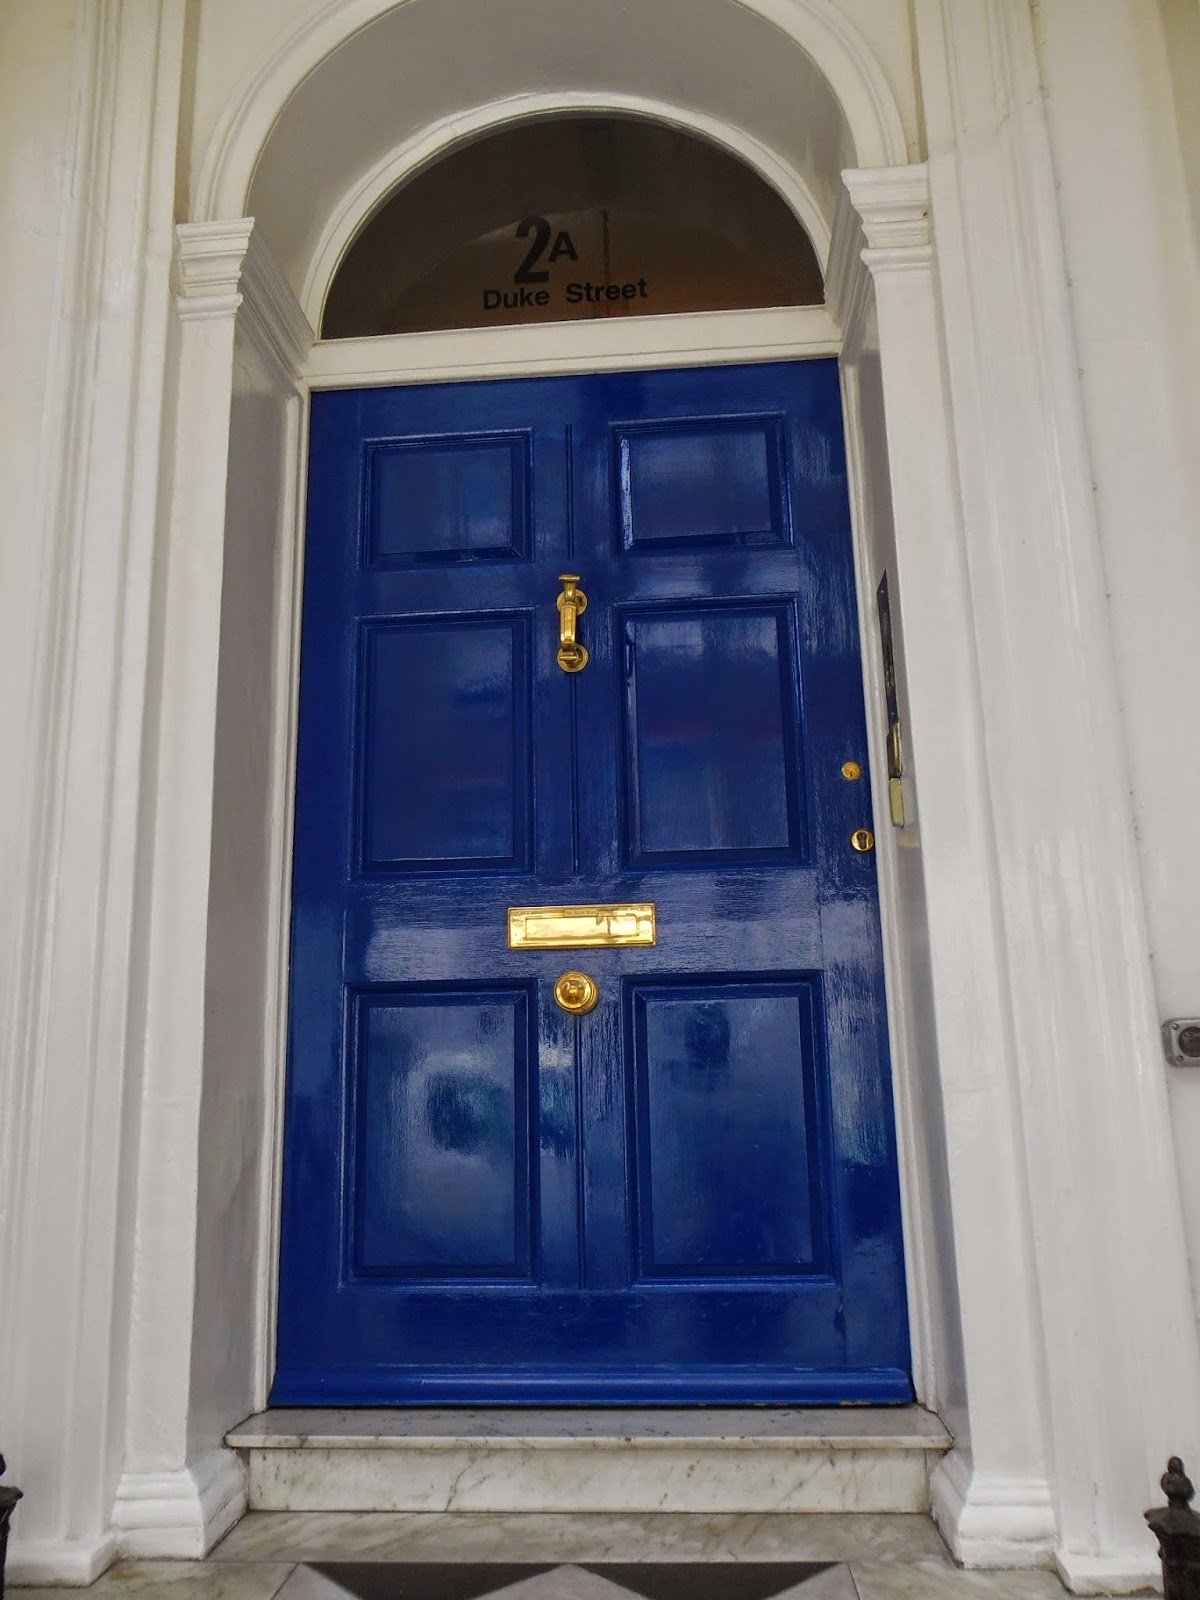 My notting hill blog - Tuesday August 26 2014